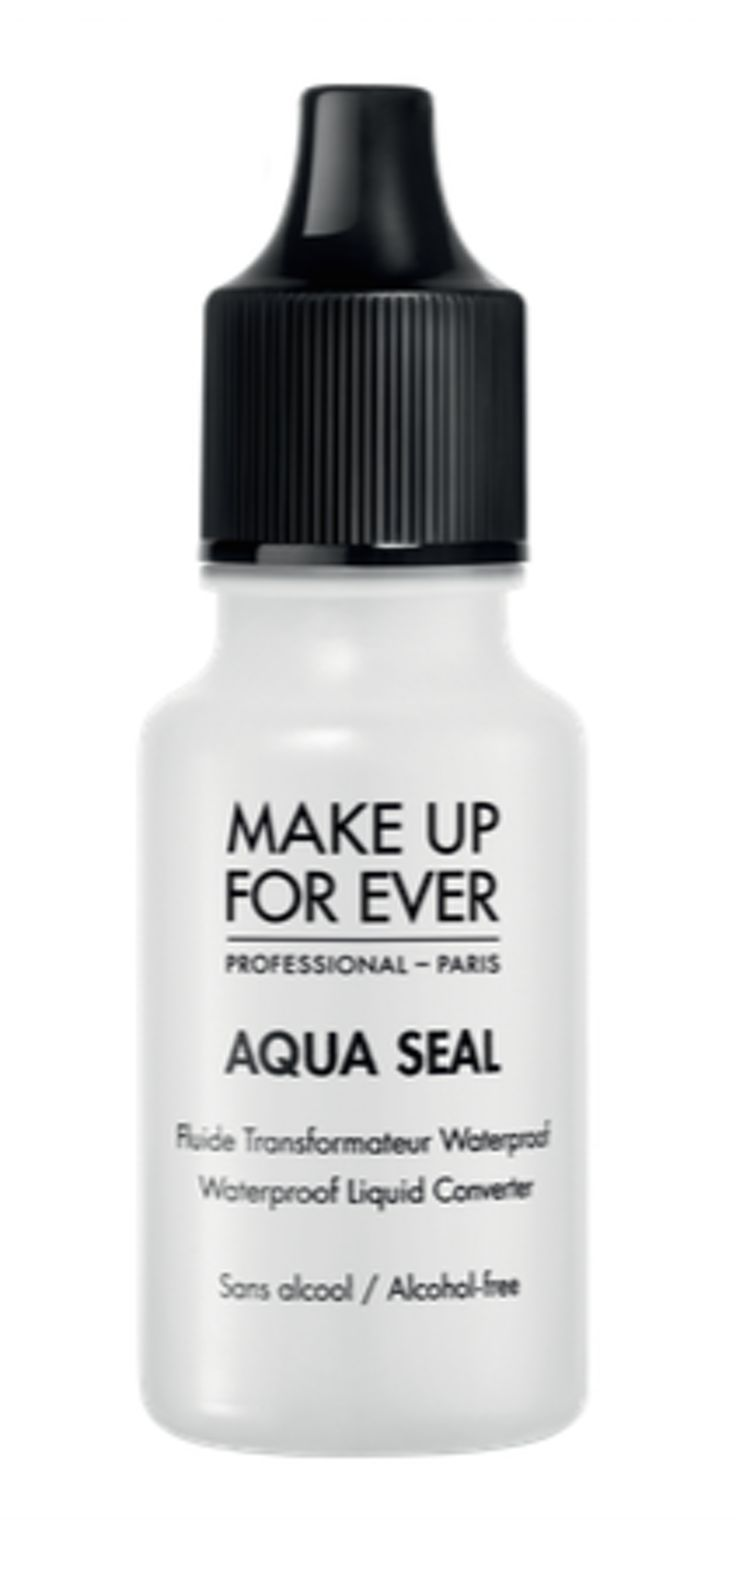 The Best Waterproof Makeup That'll Stay On Even When You're Splashing Around In The Pool